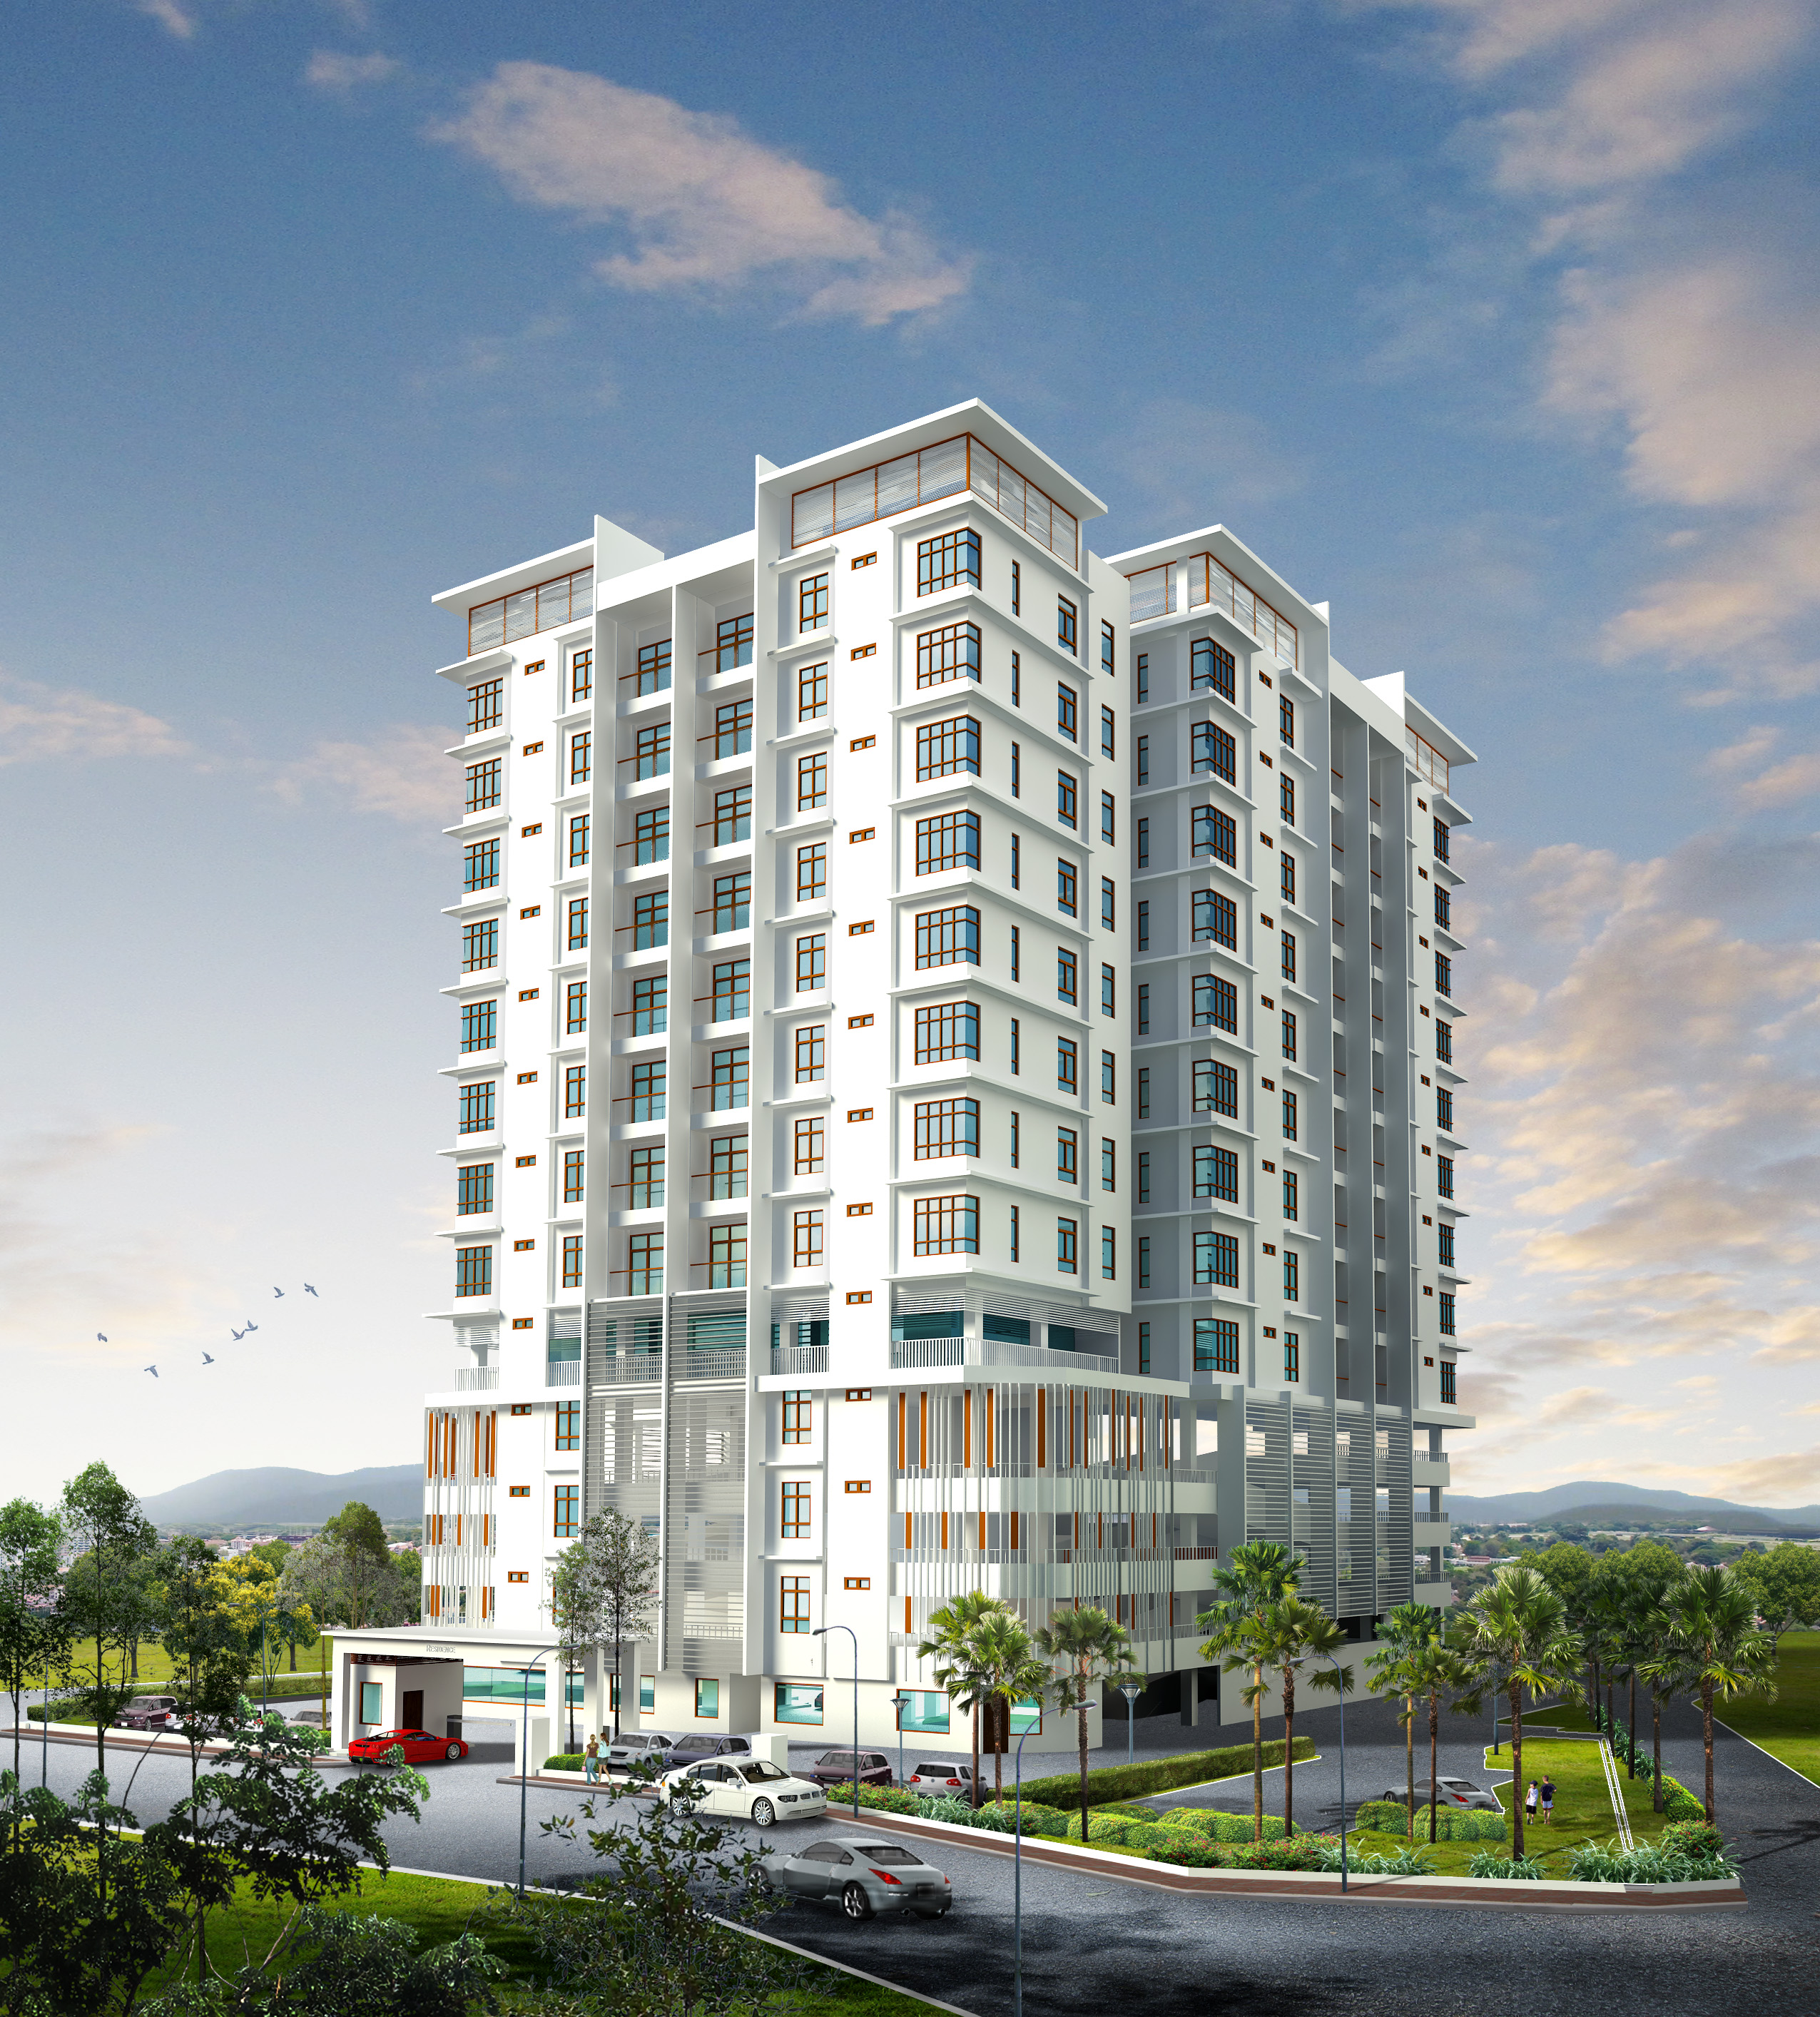 Incredible Price at RM280,800 for 1,200 sqft!  Low Density at 52 units only